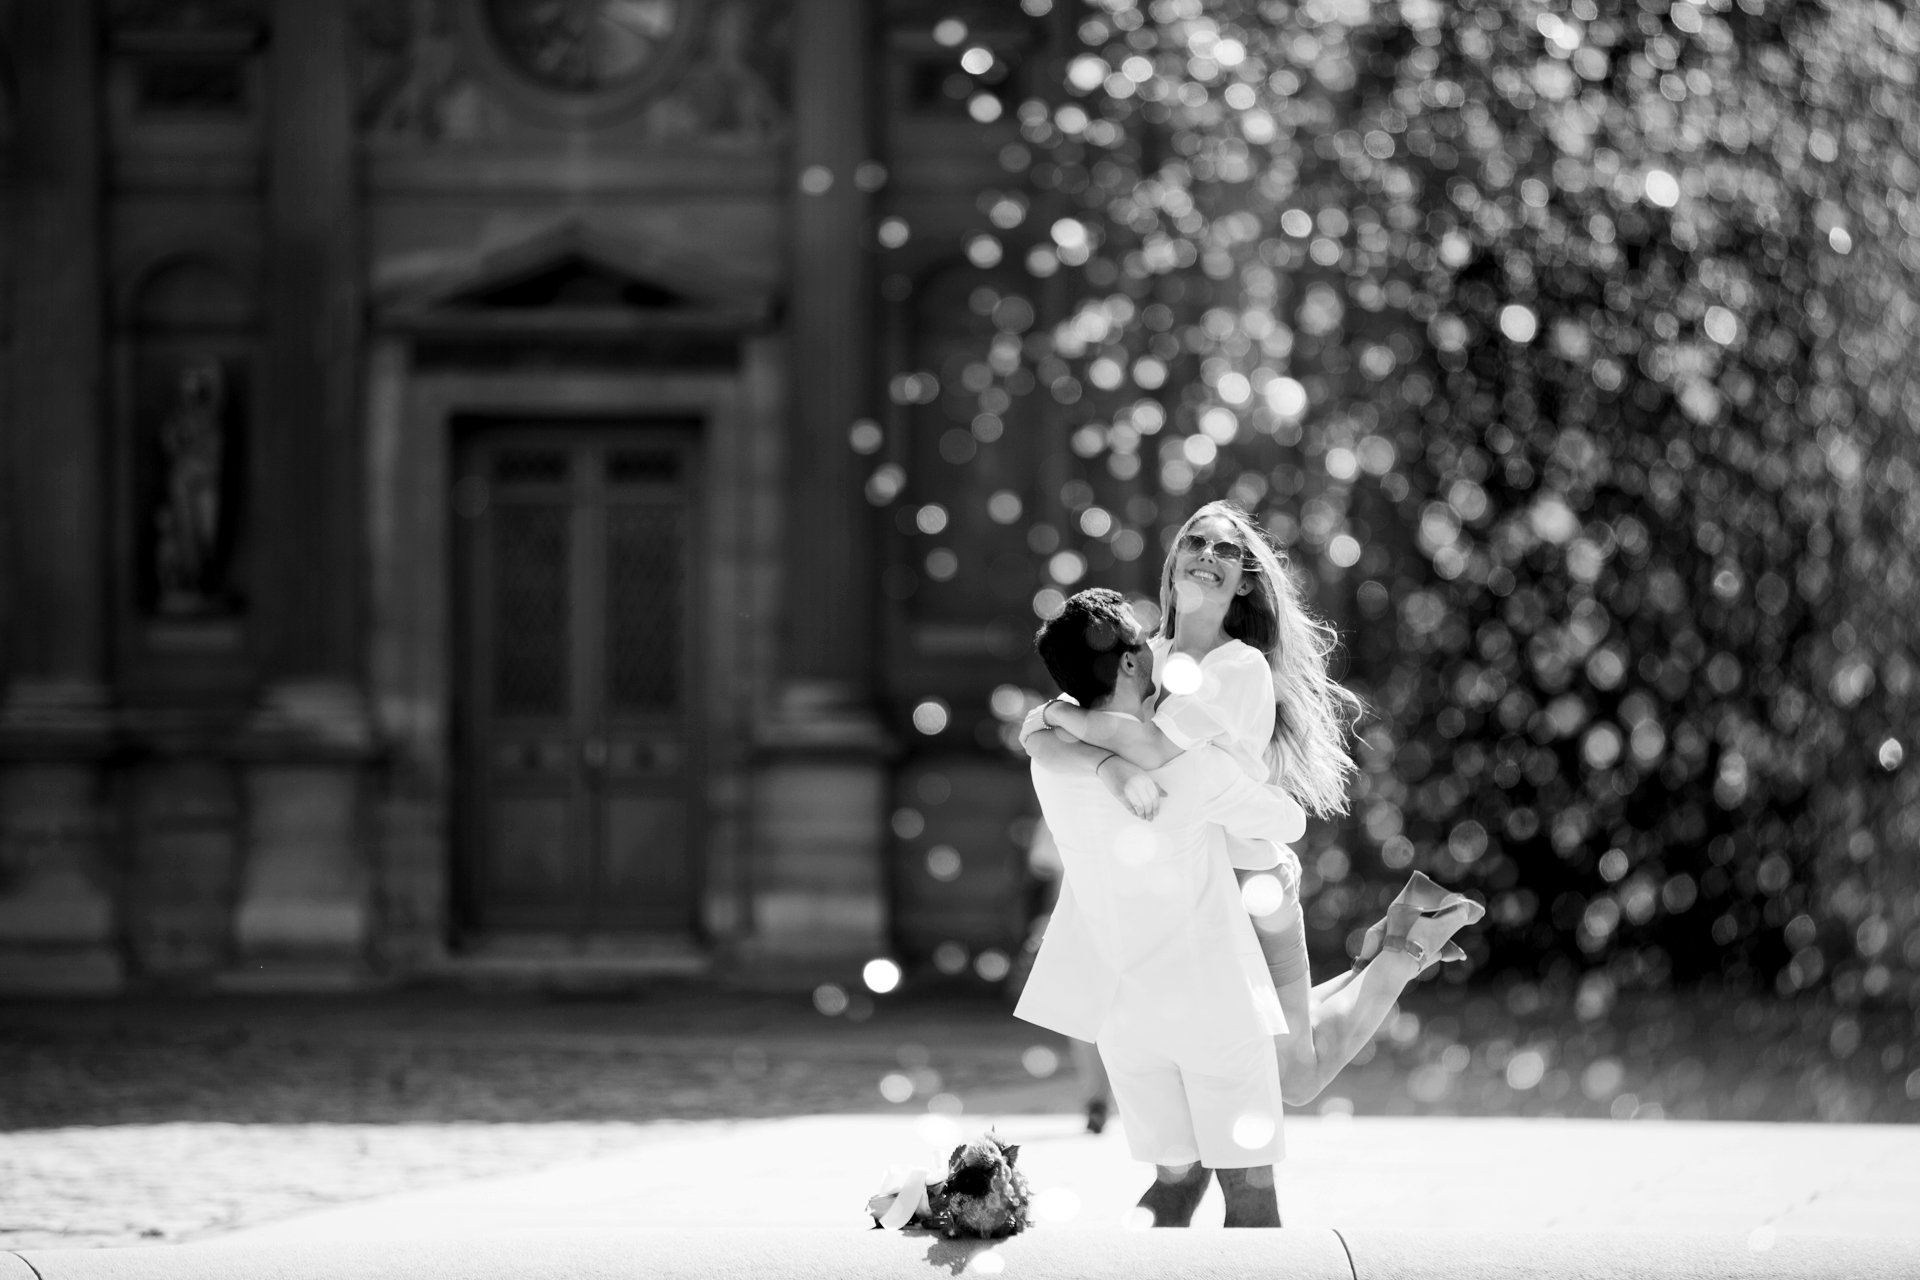 photographe-mariage-oise-paris-chantilly-senlis-keith-flament0037